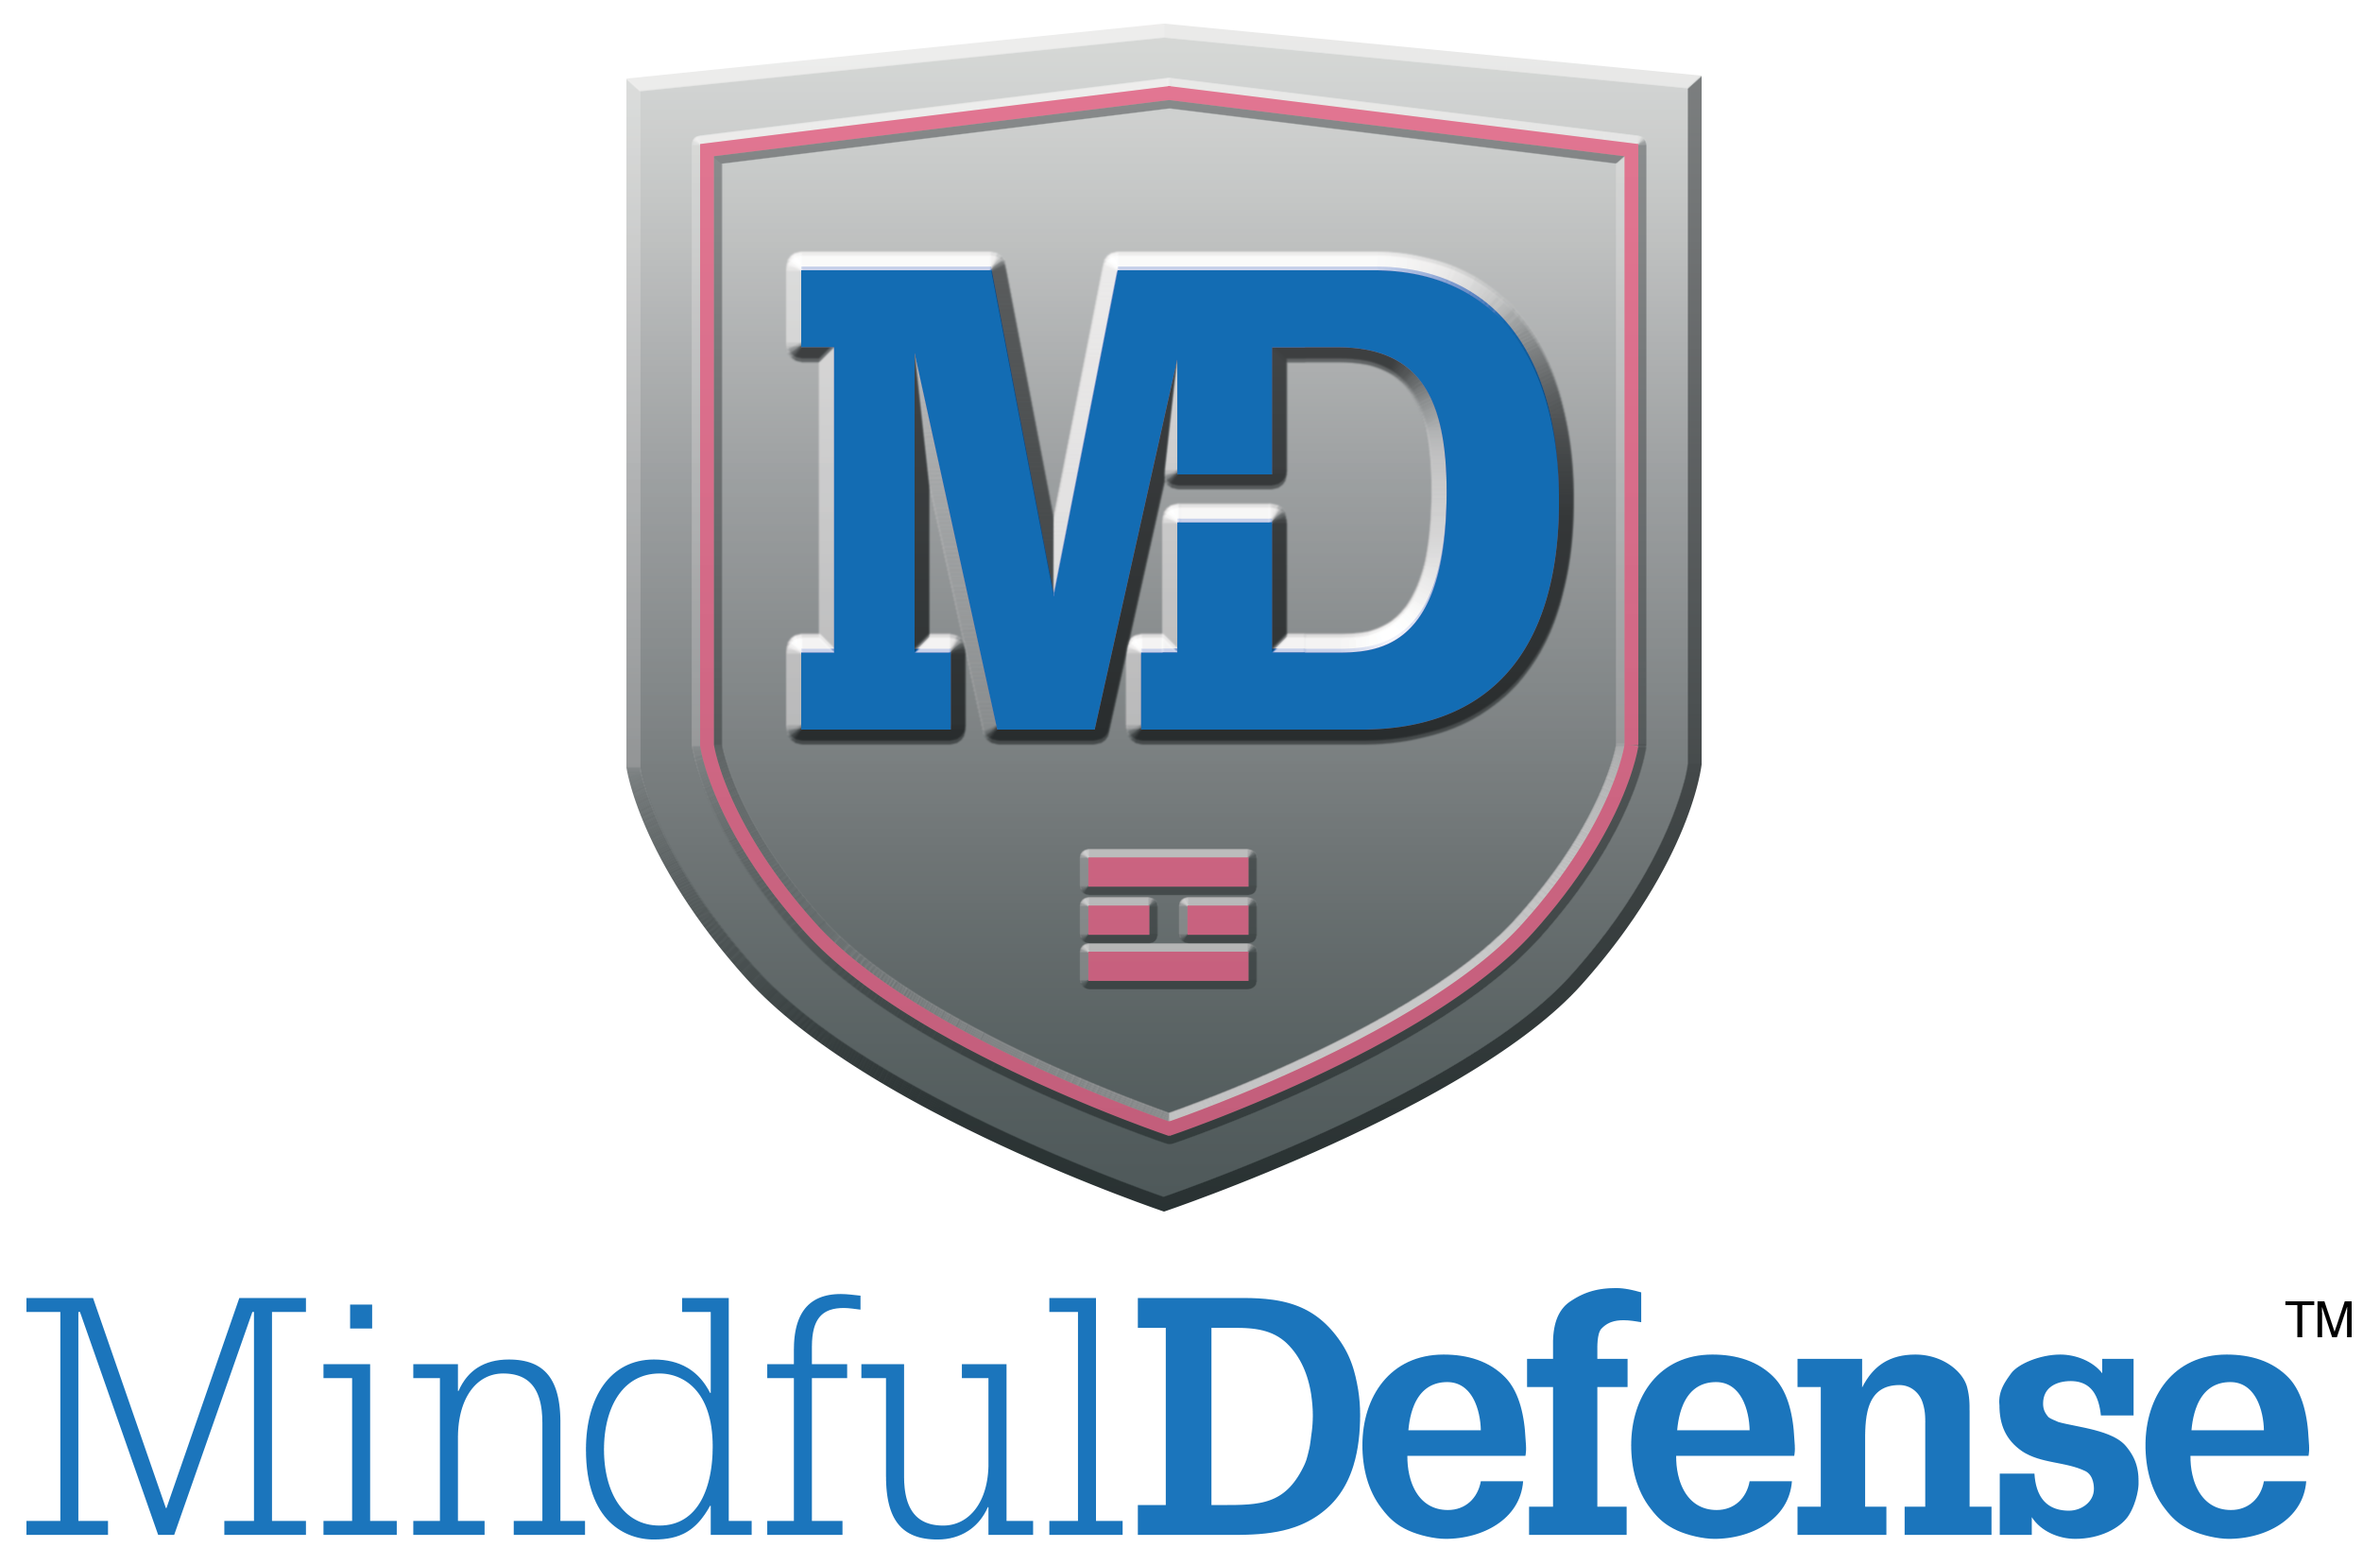 Online Self-Defense Training